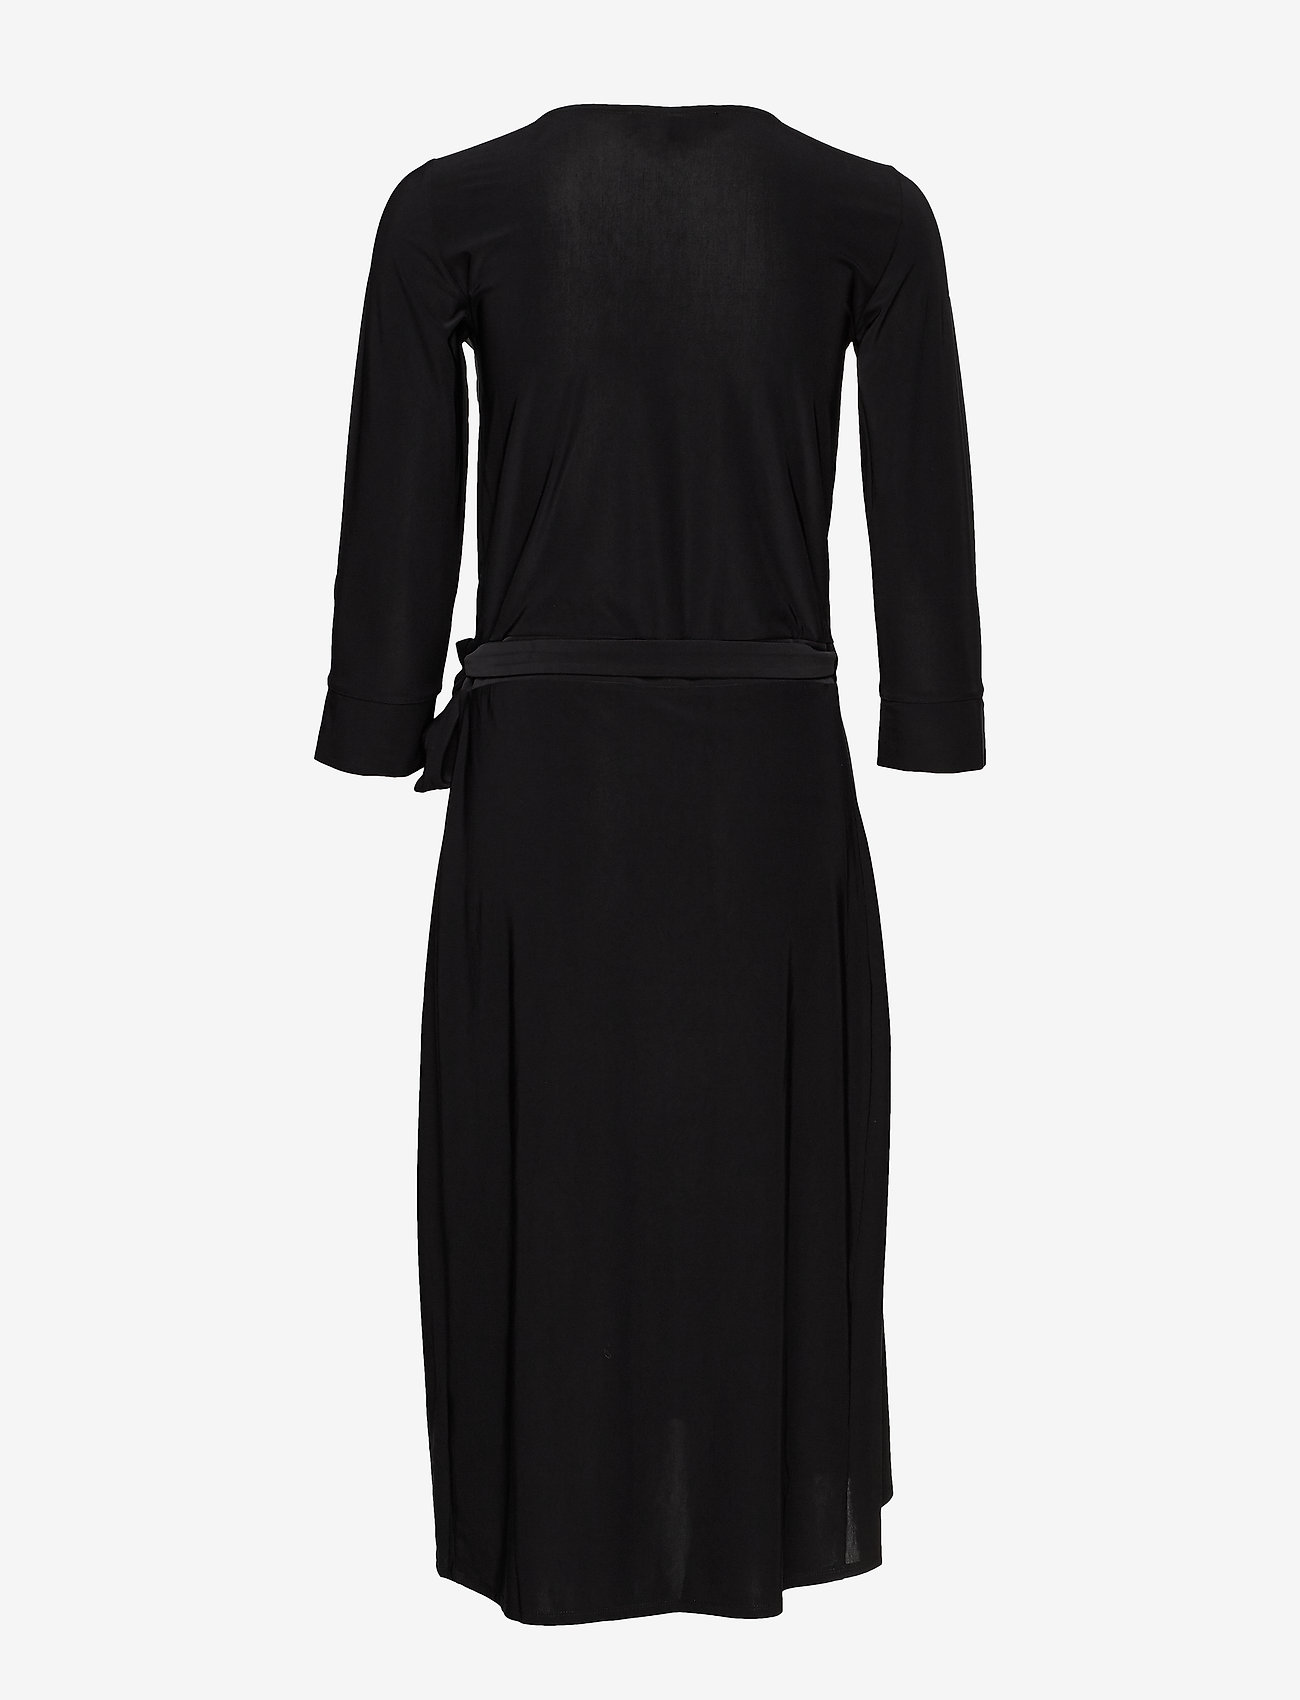 Dress (Black) (77.50 €) - Ilse Jacobsen Ufqmz